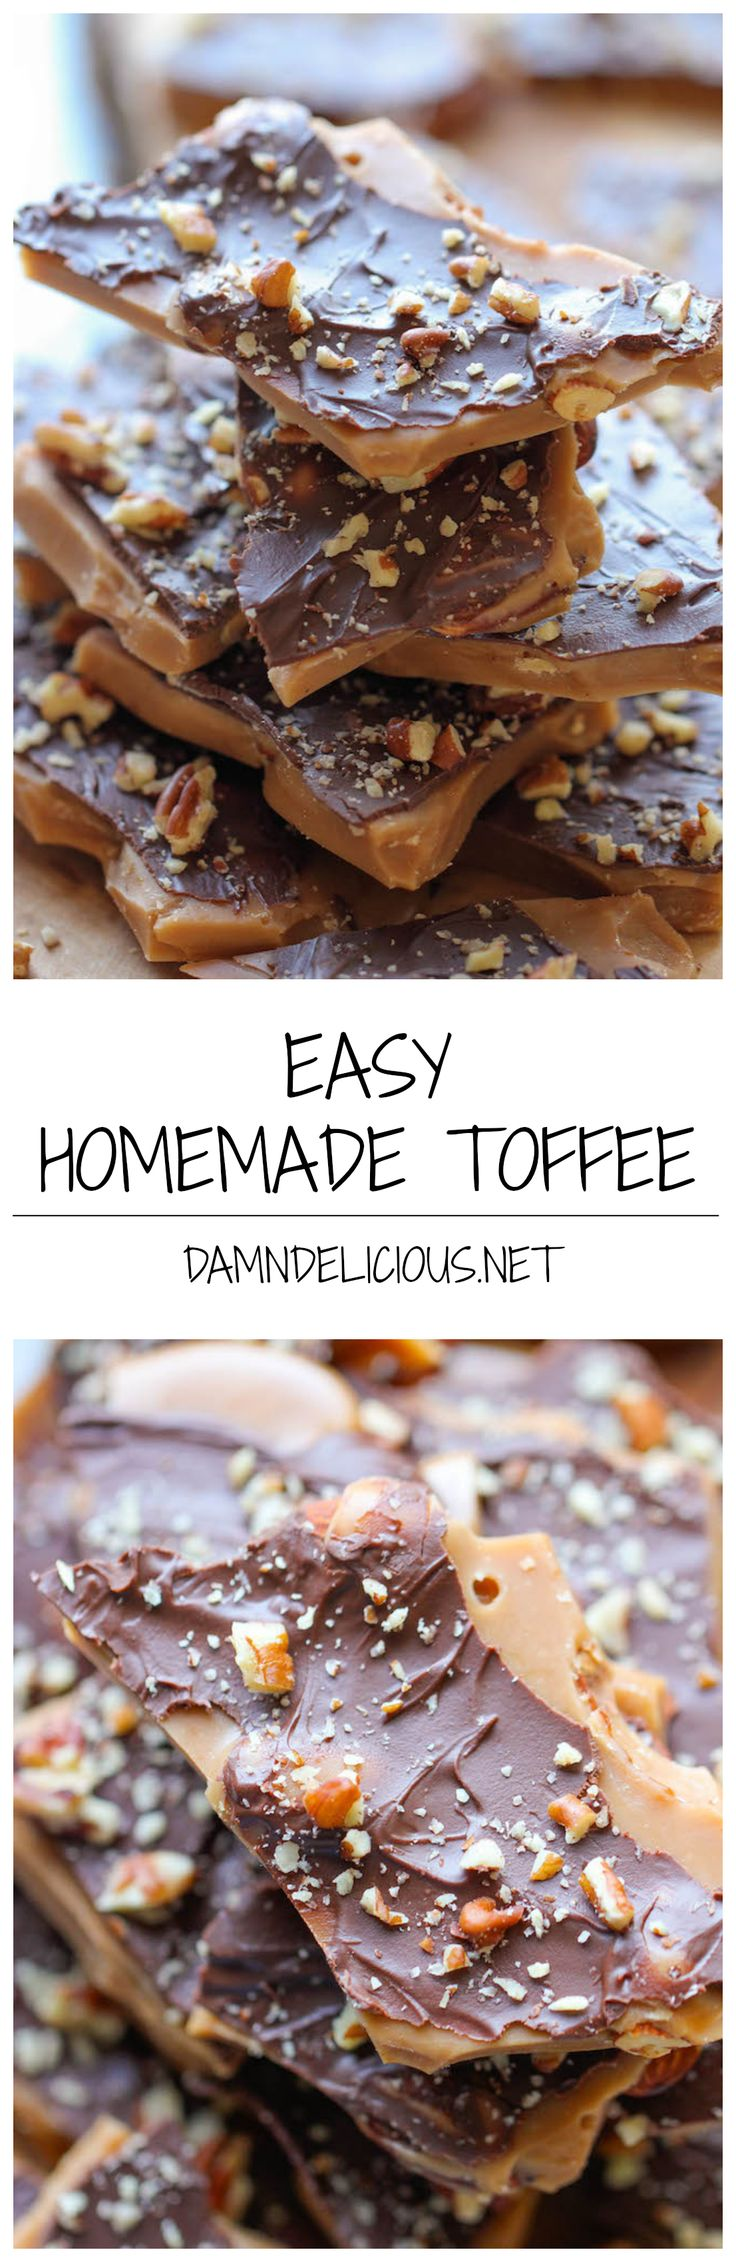 Easy Homemade Toffee - An unbelievably easy, no-fuss, homemade toffee recipe. So addictive, you won't want to share! @Michele Morales Howard Delicious